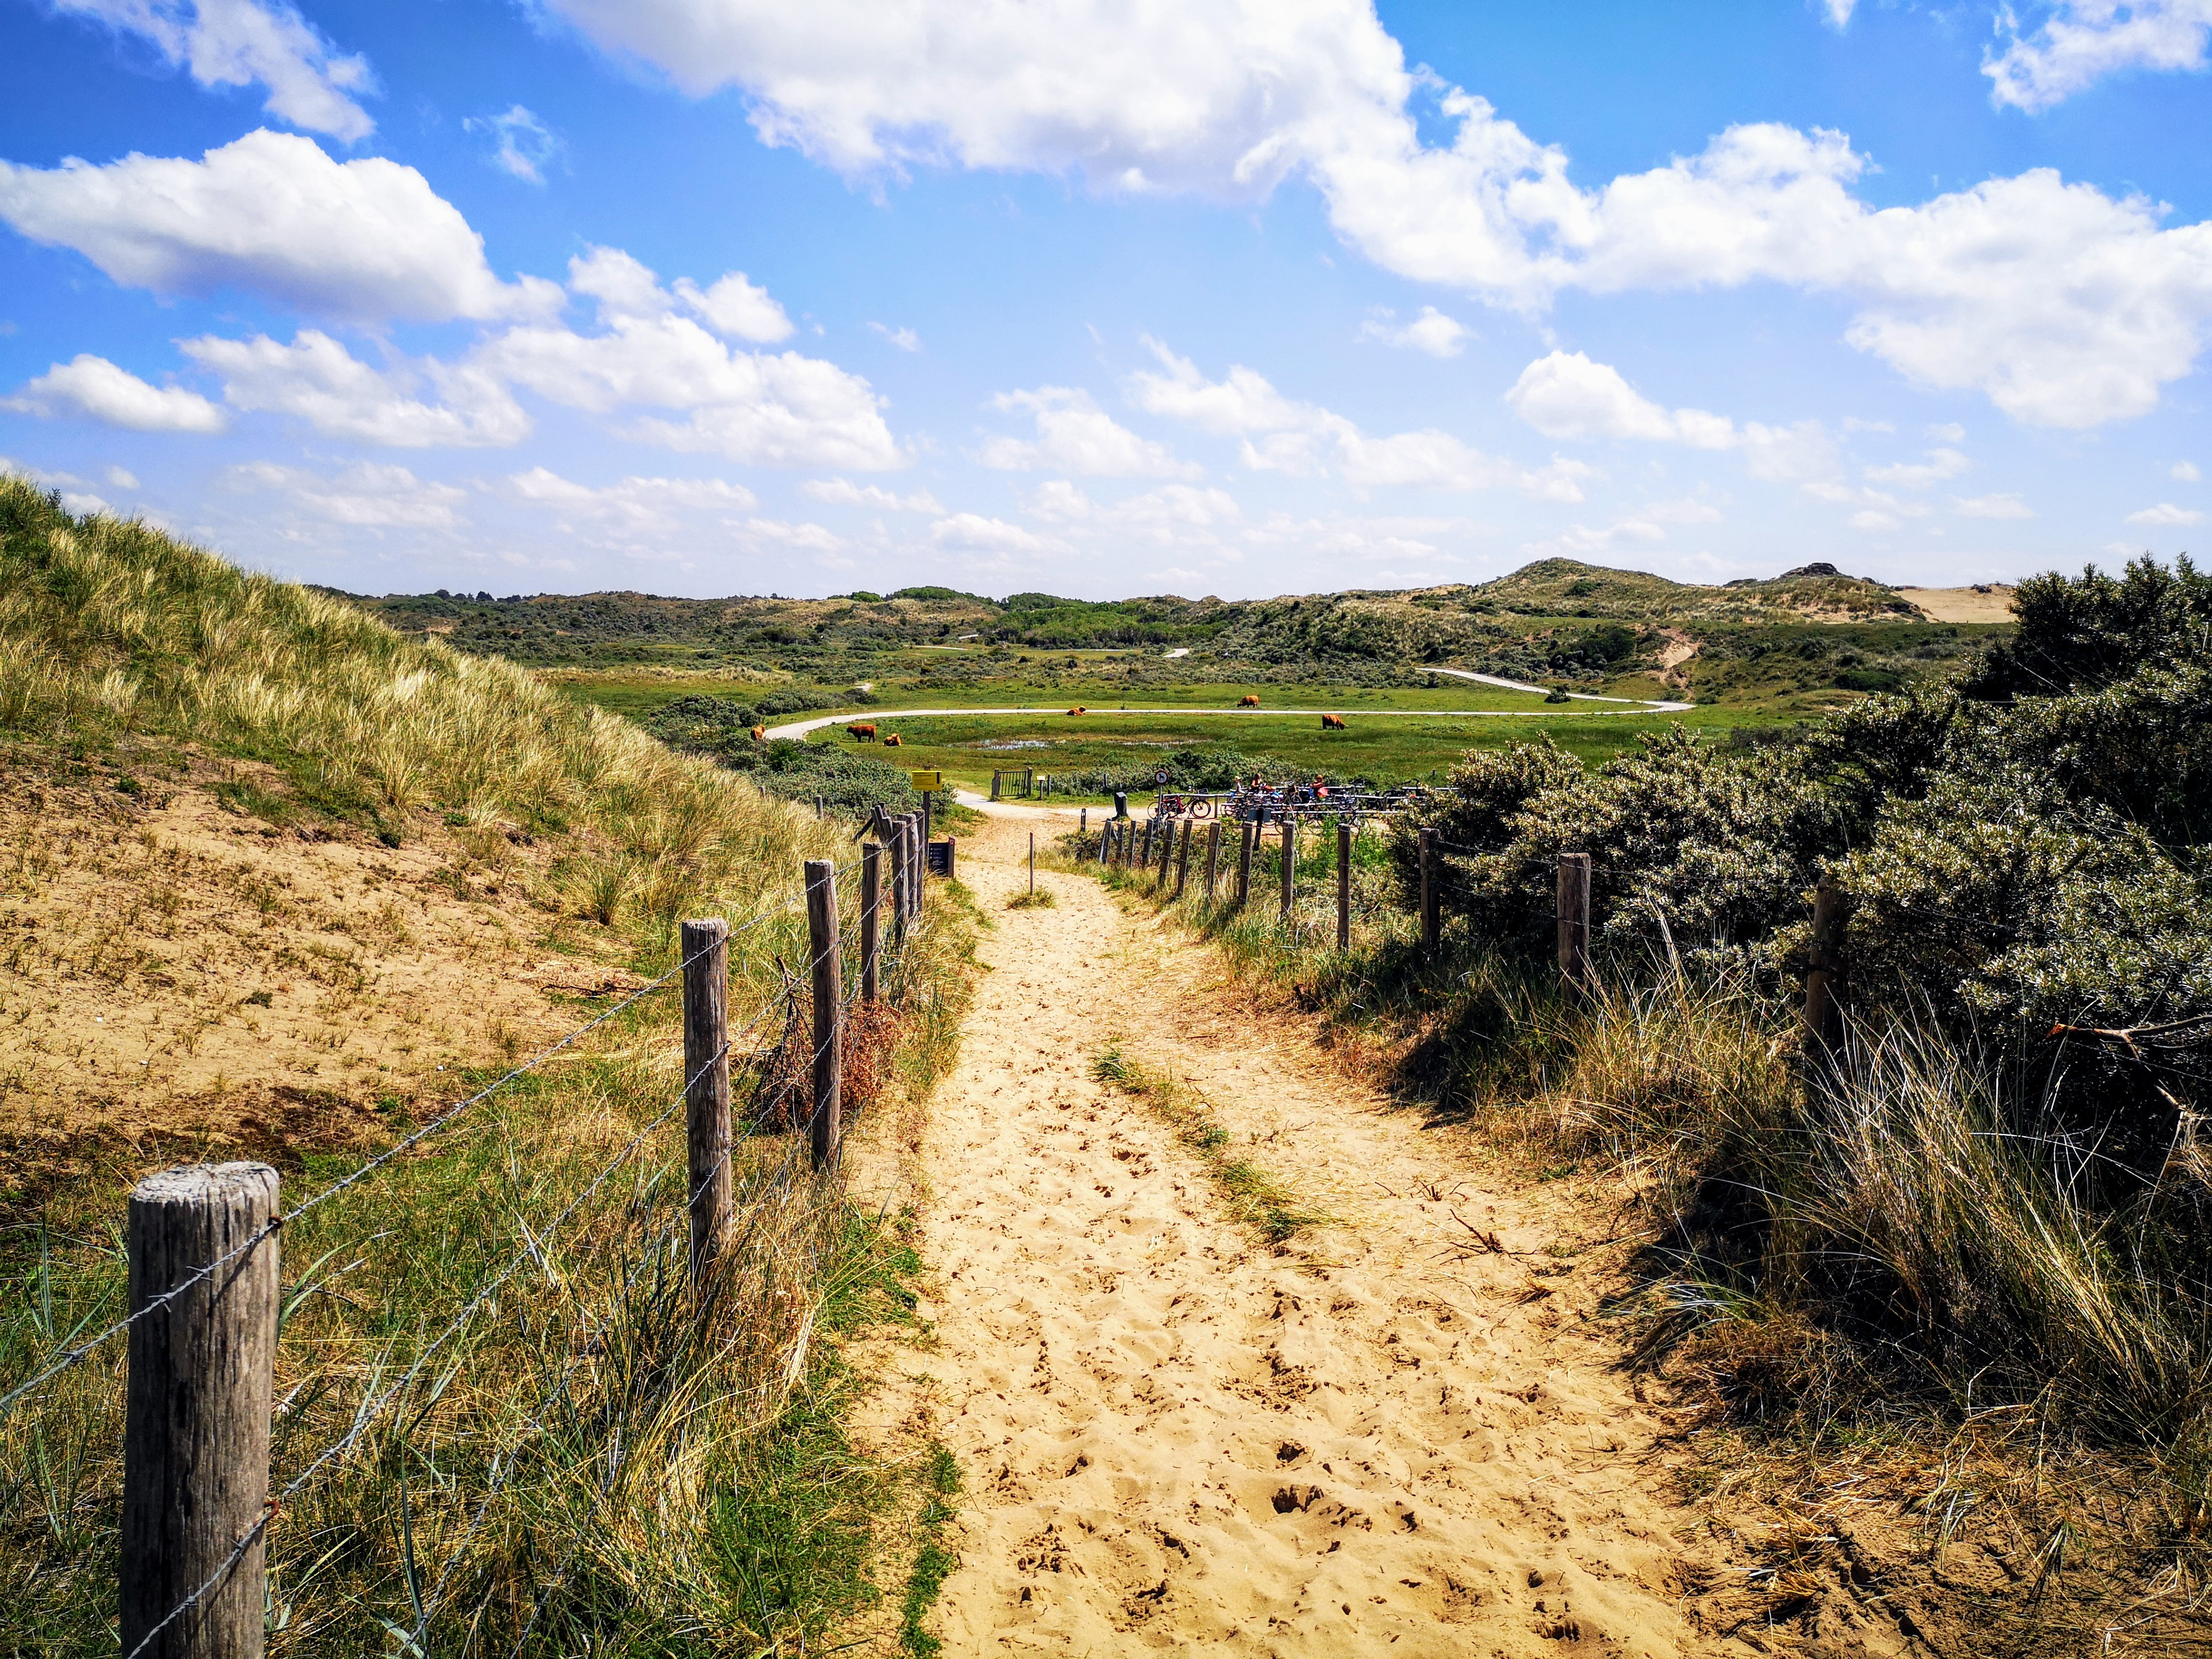 Hiking the Dutch Coastal path 2 - Long distance hiking path in The Netherlands